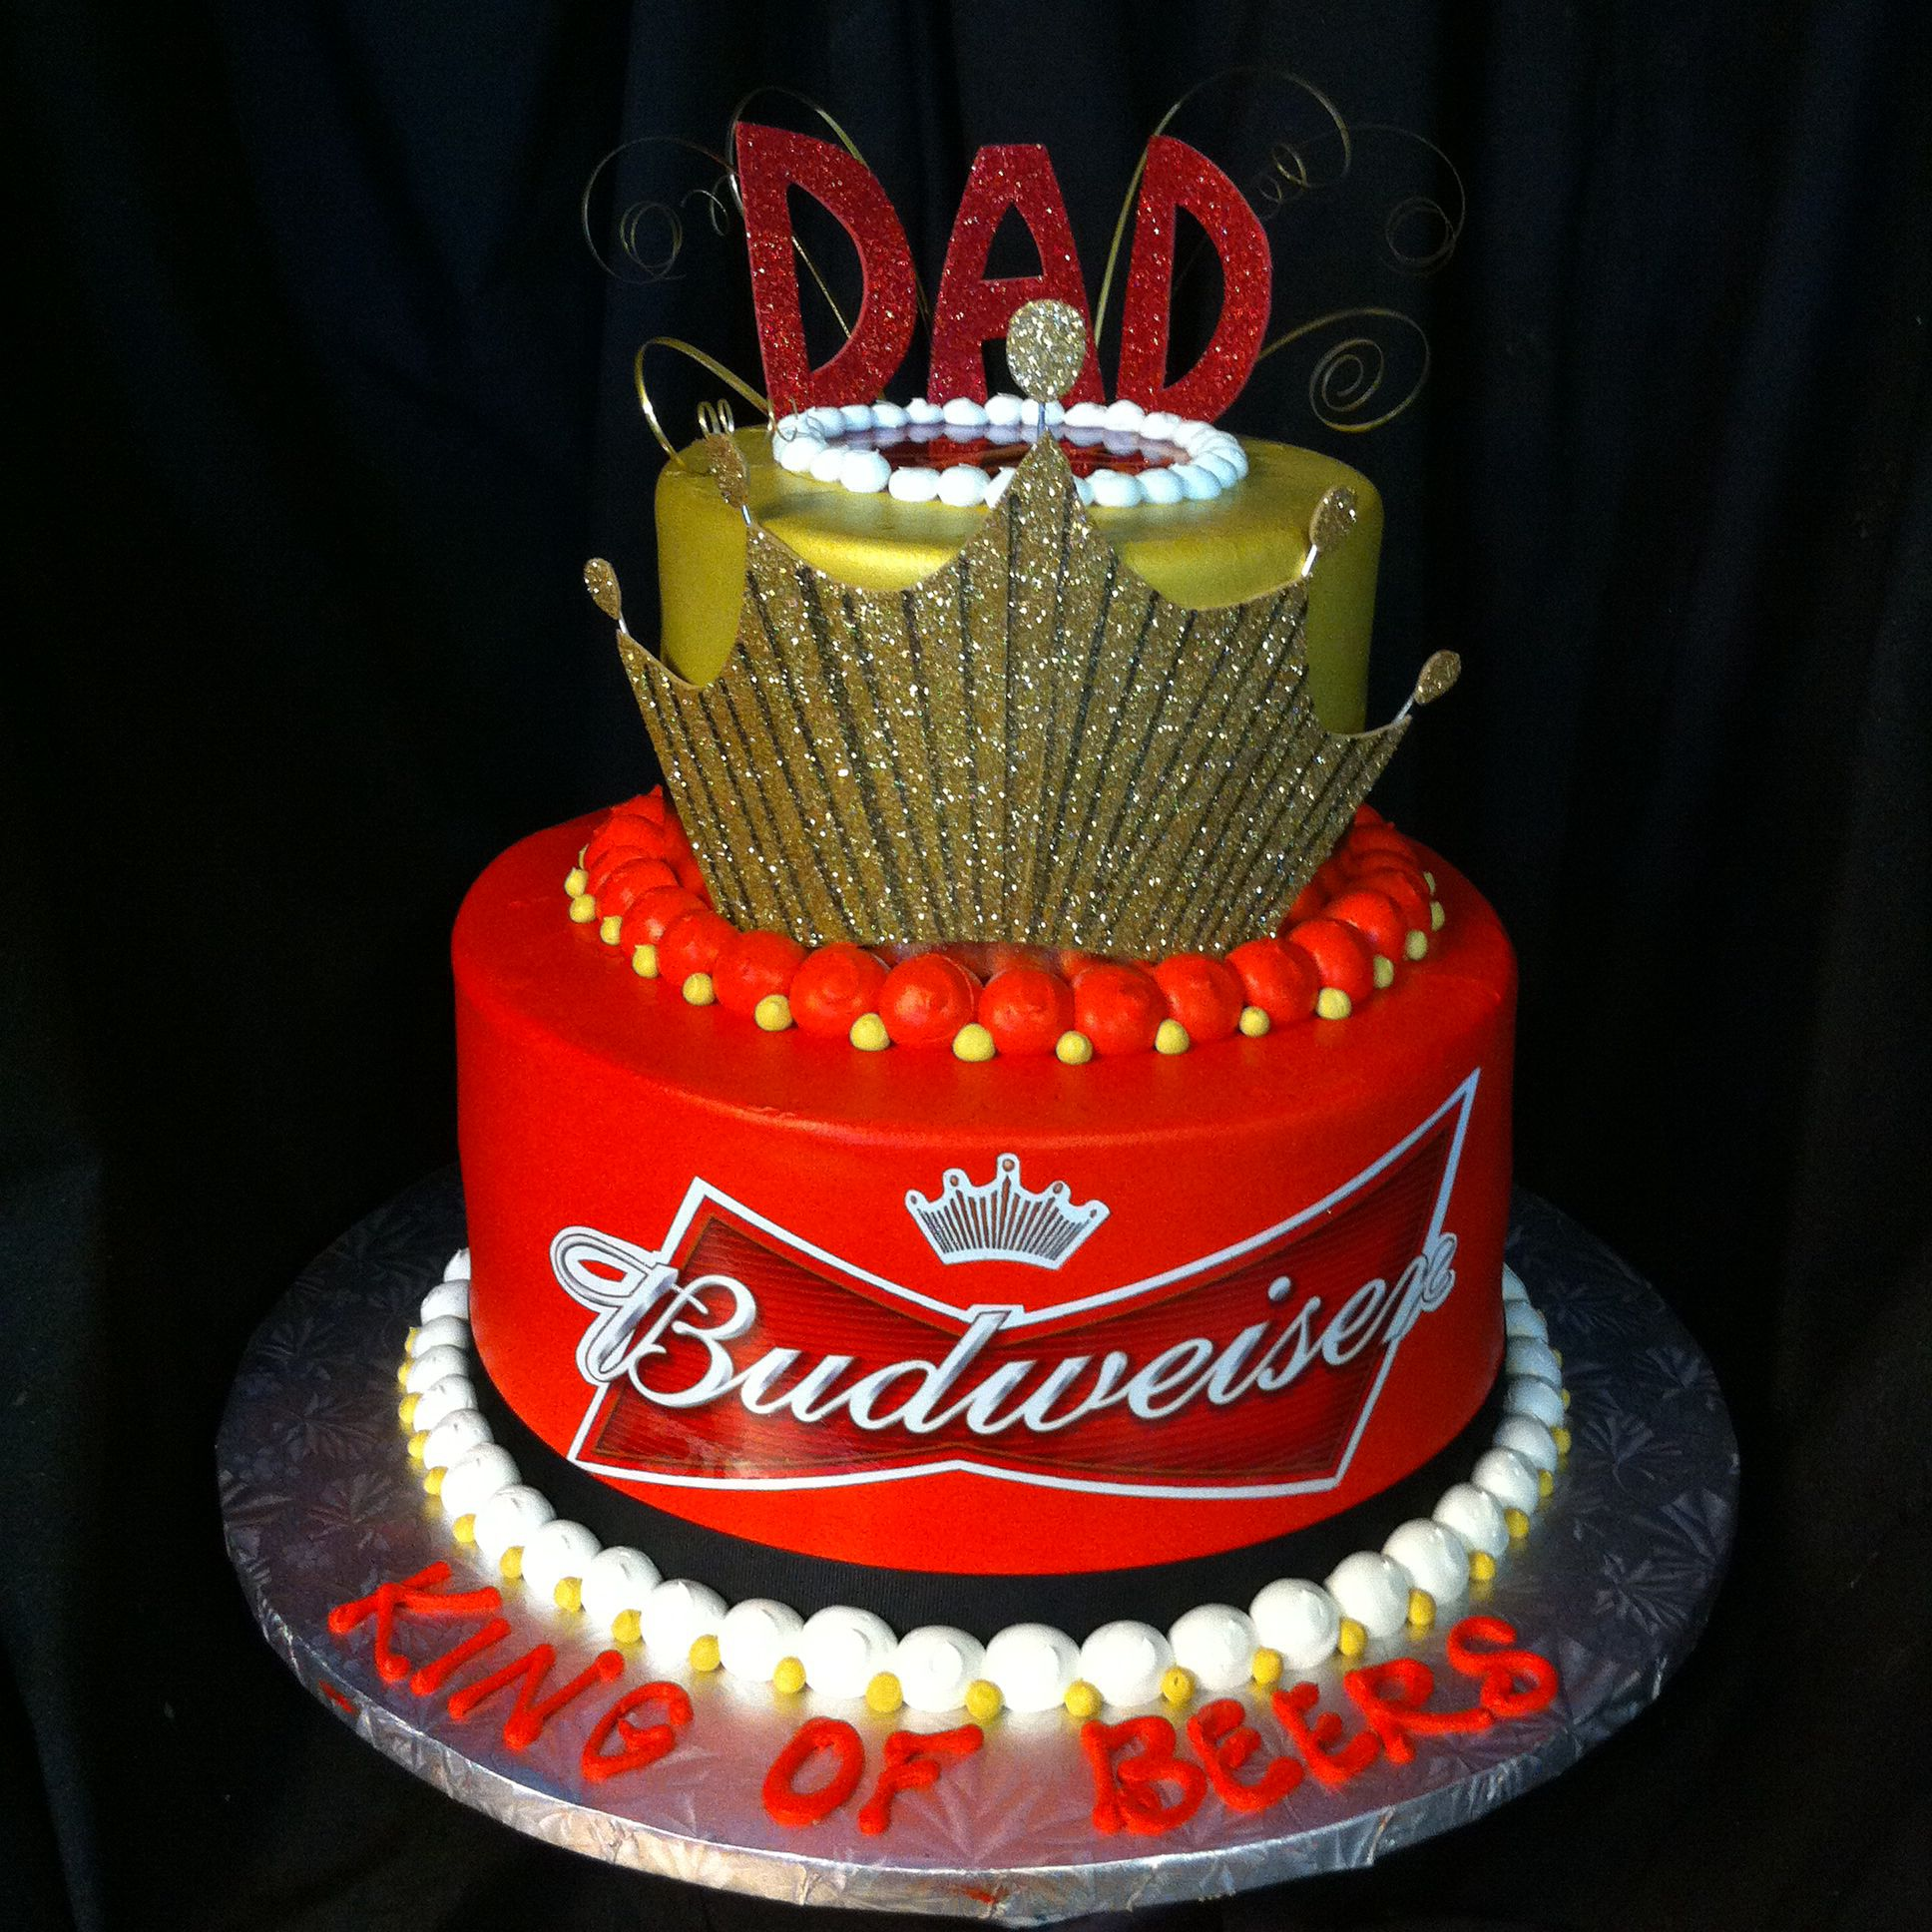 Budweiser birthday cake This is bad ass men cakes